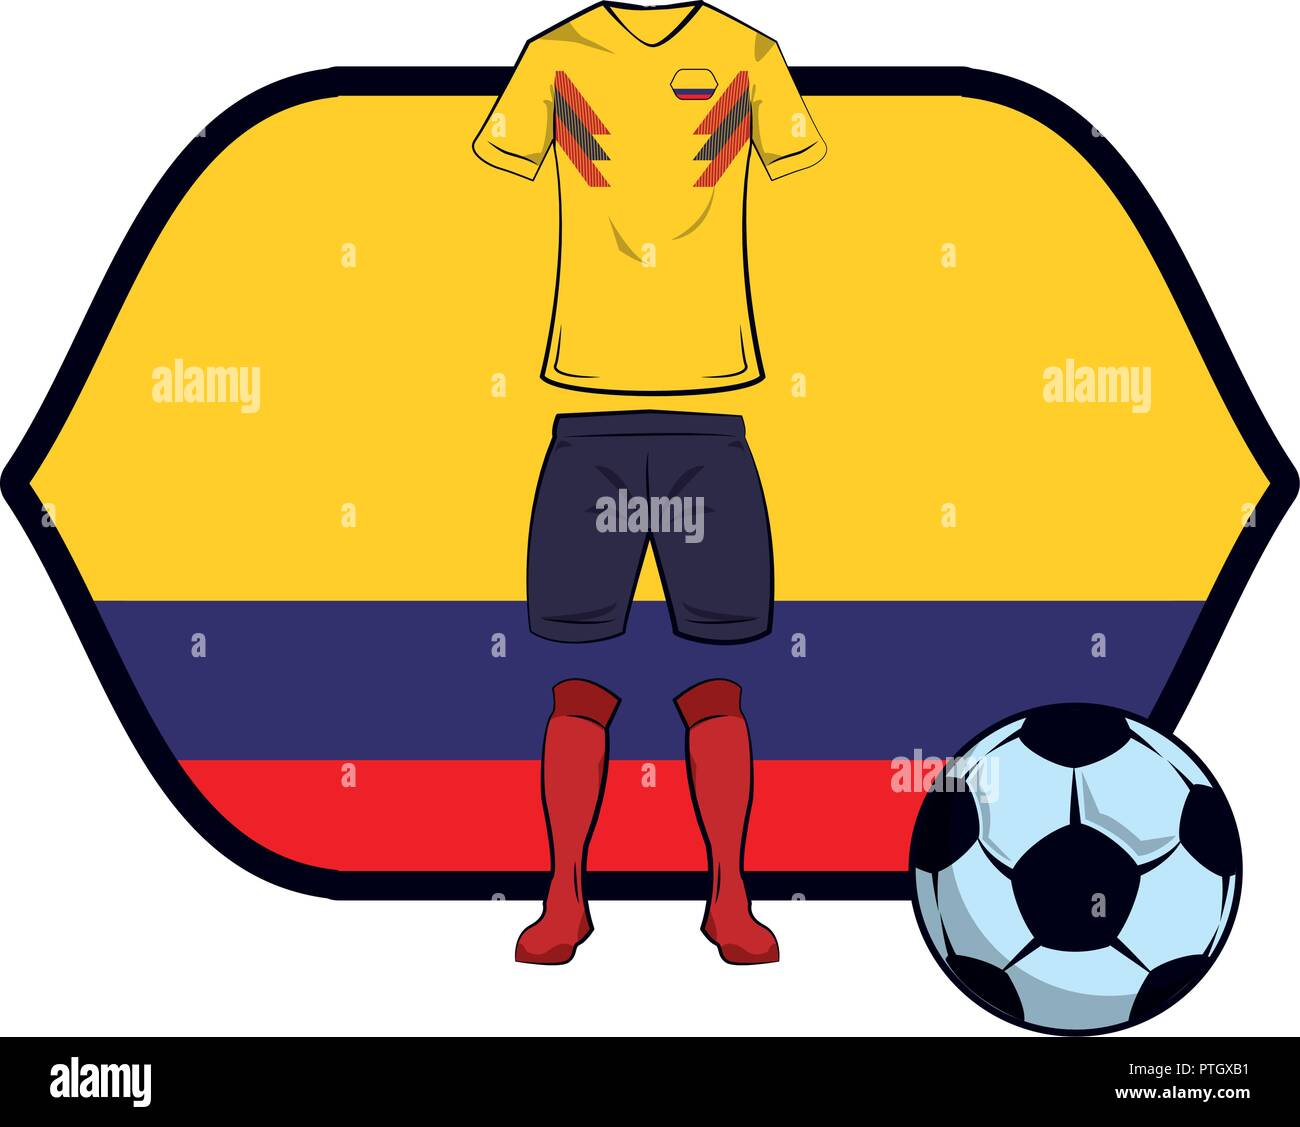 Colombia Soccer Ball Stock Photos   Colombia Soccer Ball Stock ... b40ba1655